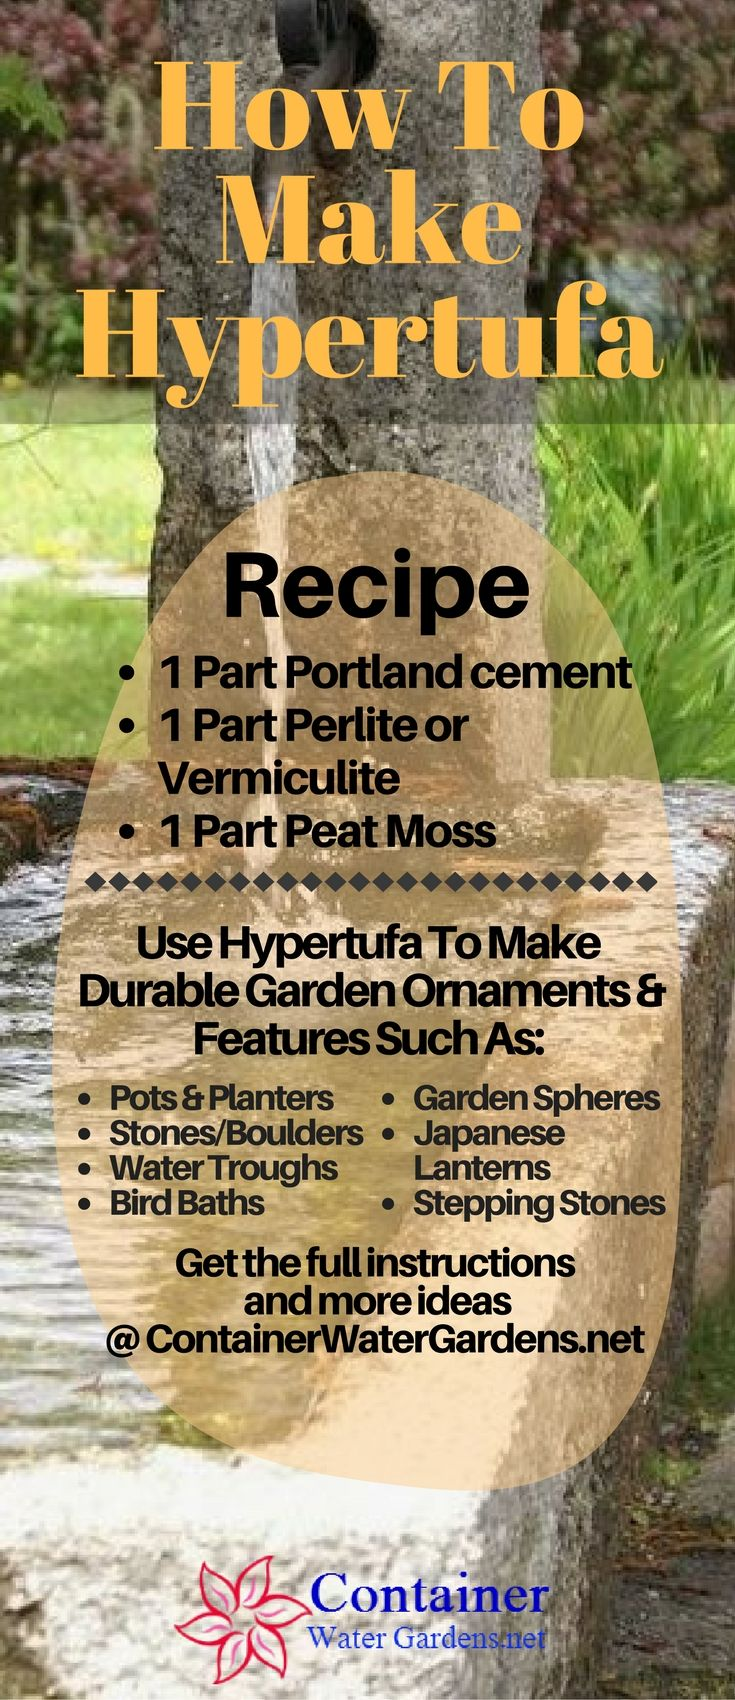 See the full instructions and outdoor decorative objects you can make with hypertufa.